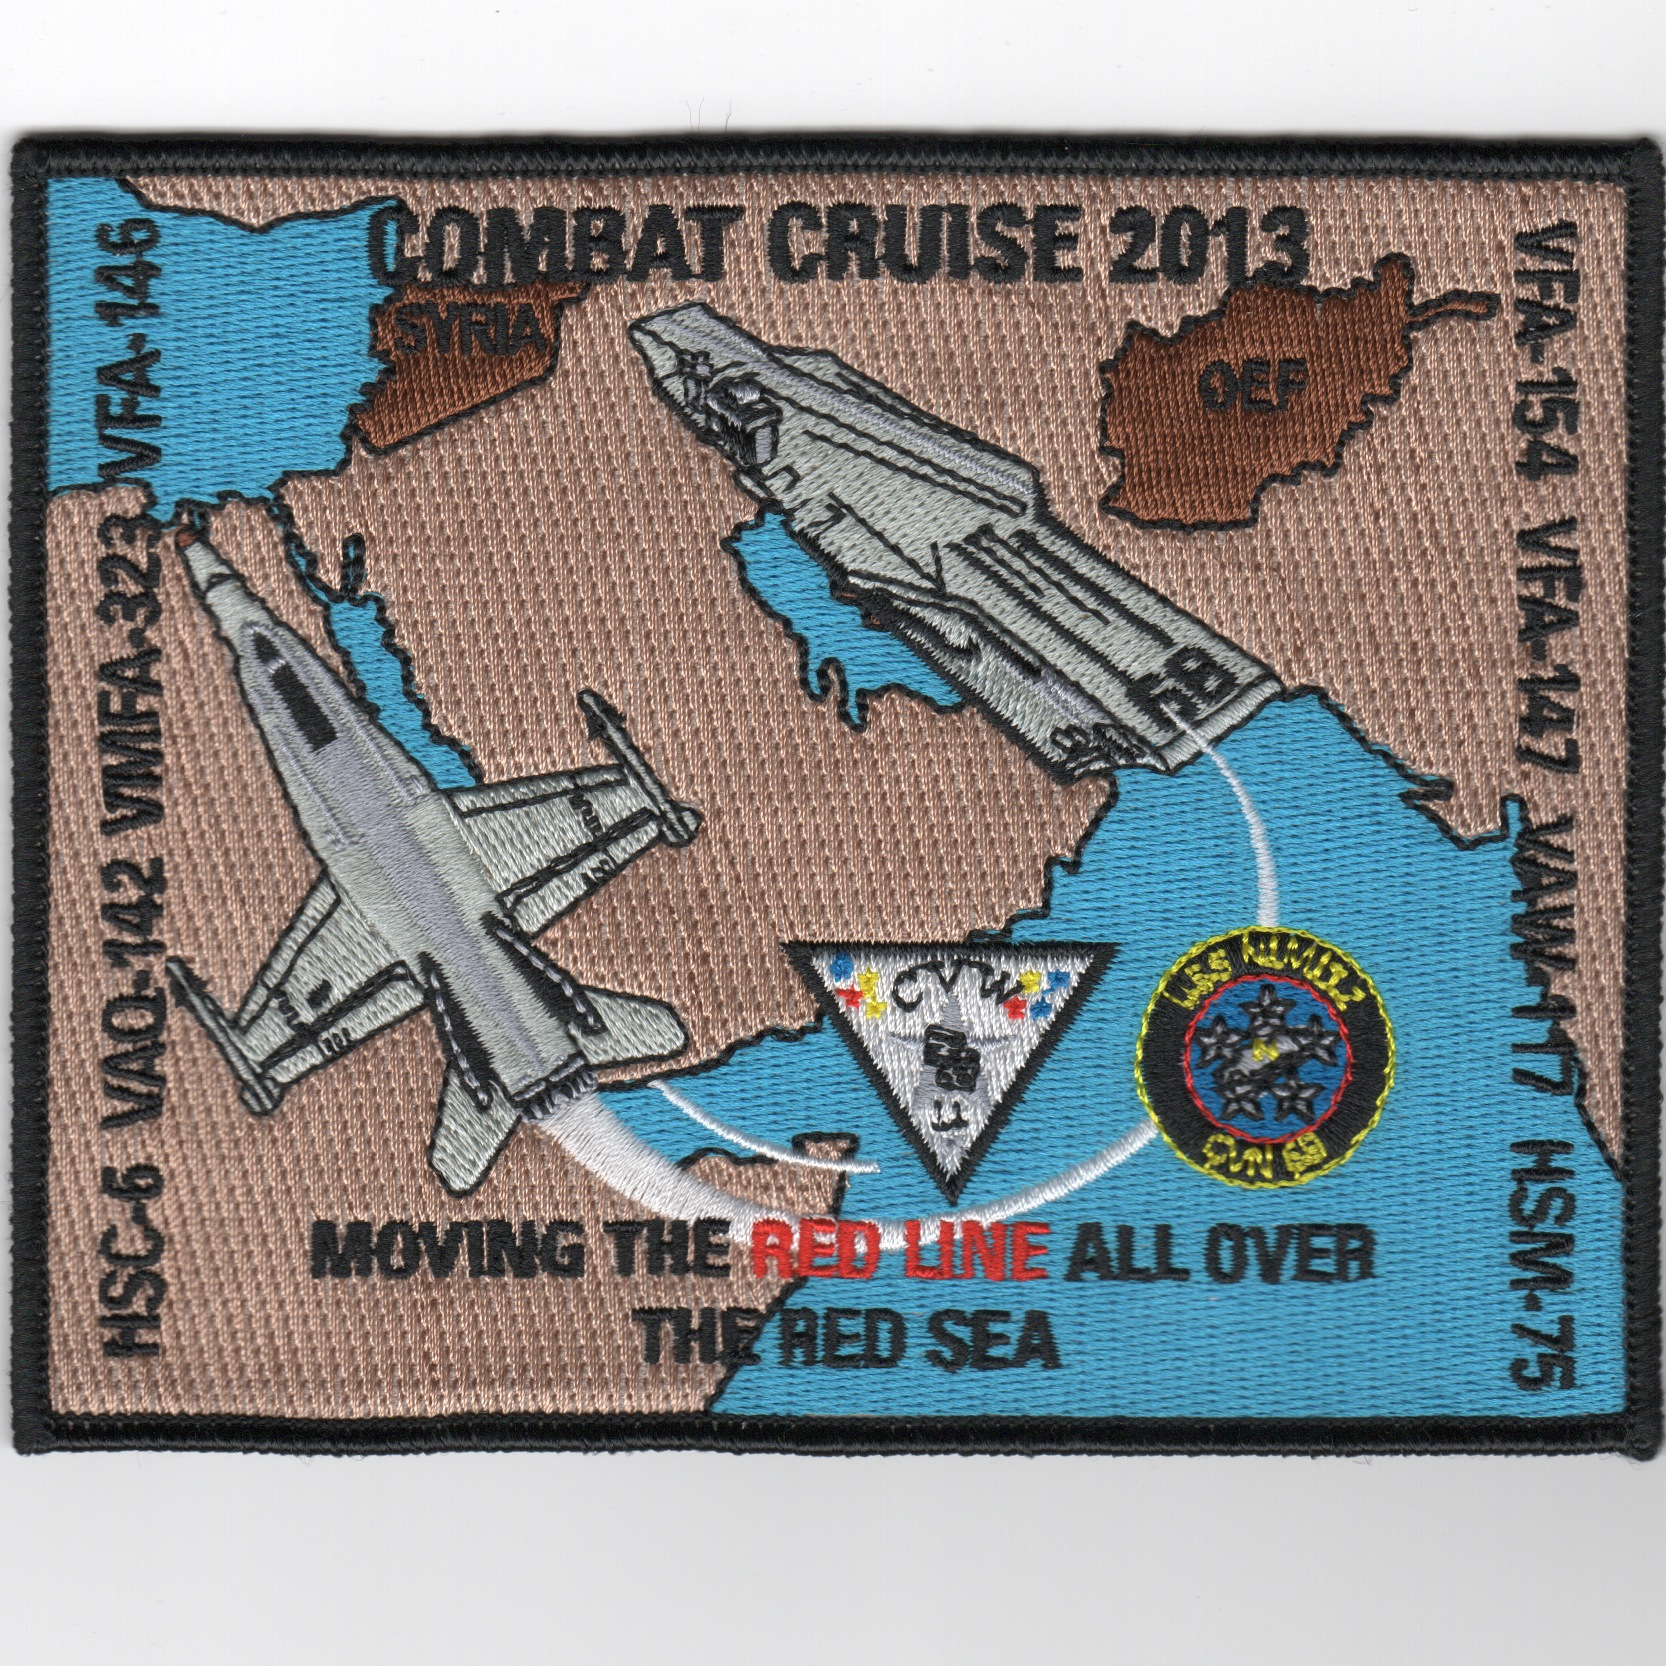 CVN-68/CVW-11 2013 Combat Cruise Patch (Square)